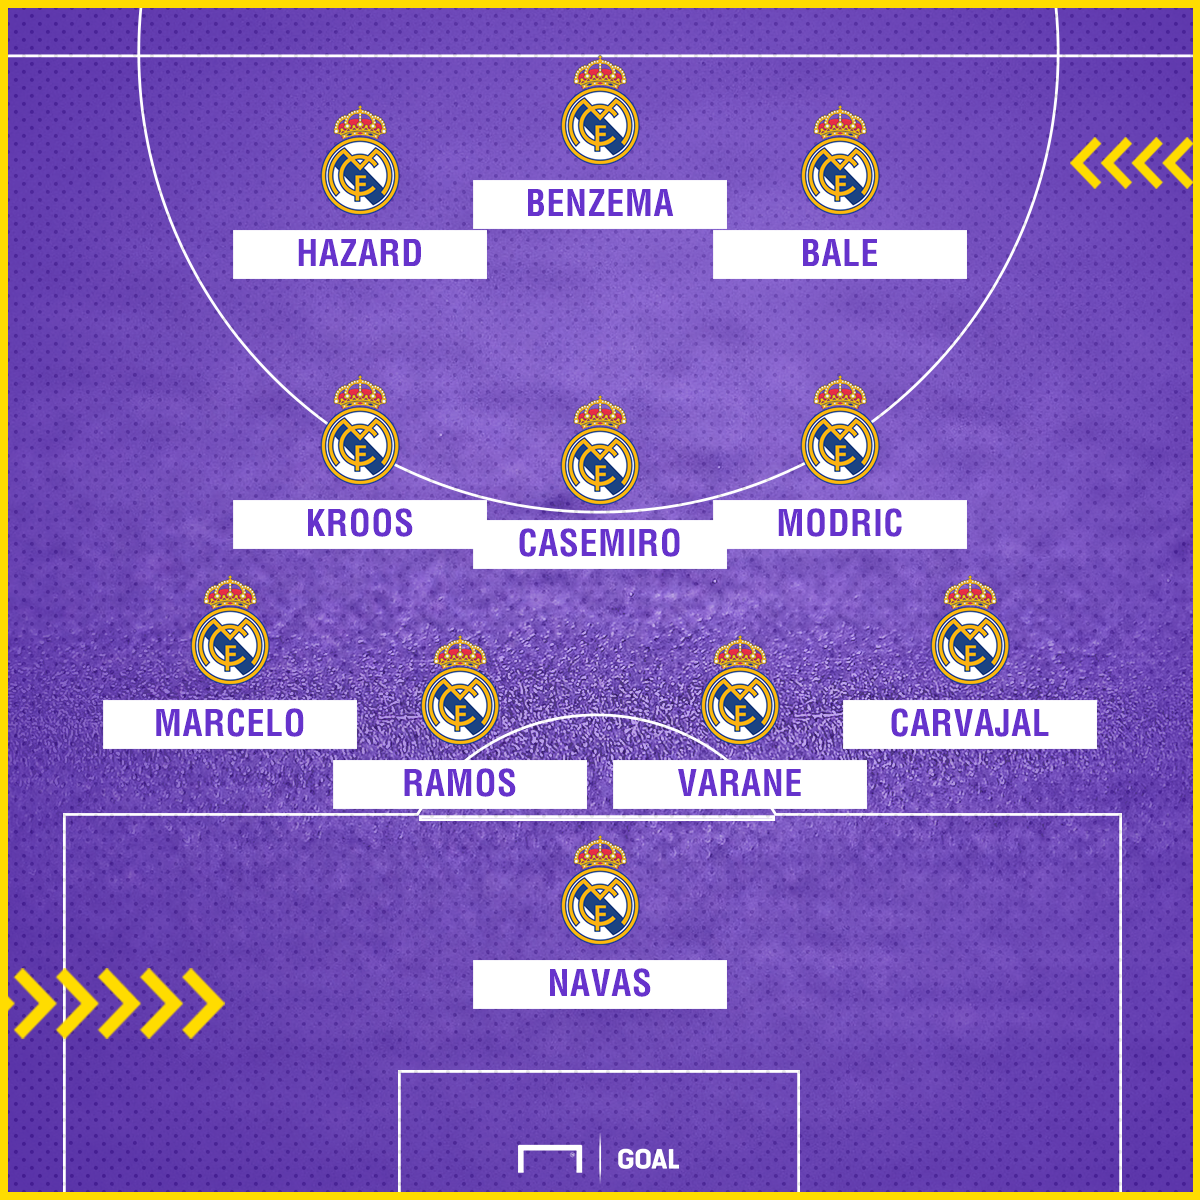 Real Madrid with Hazard